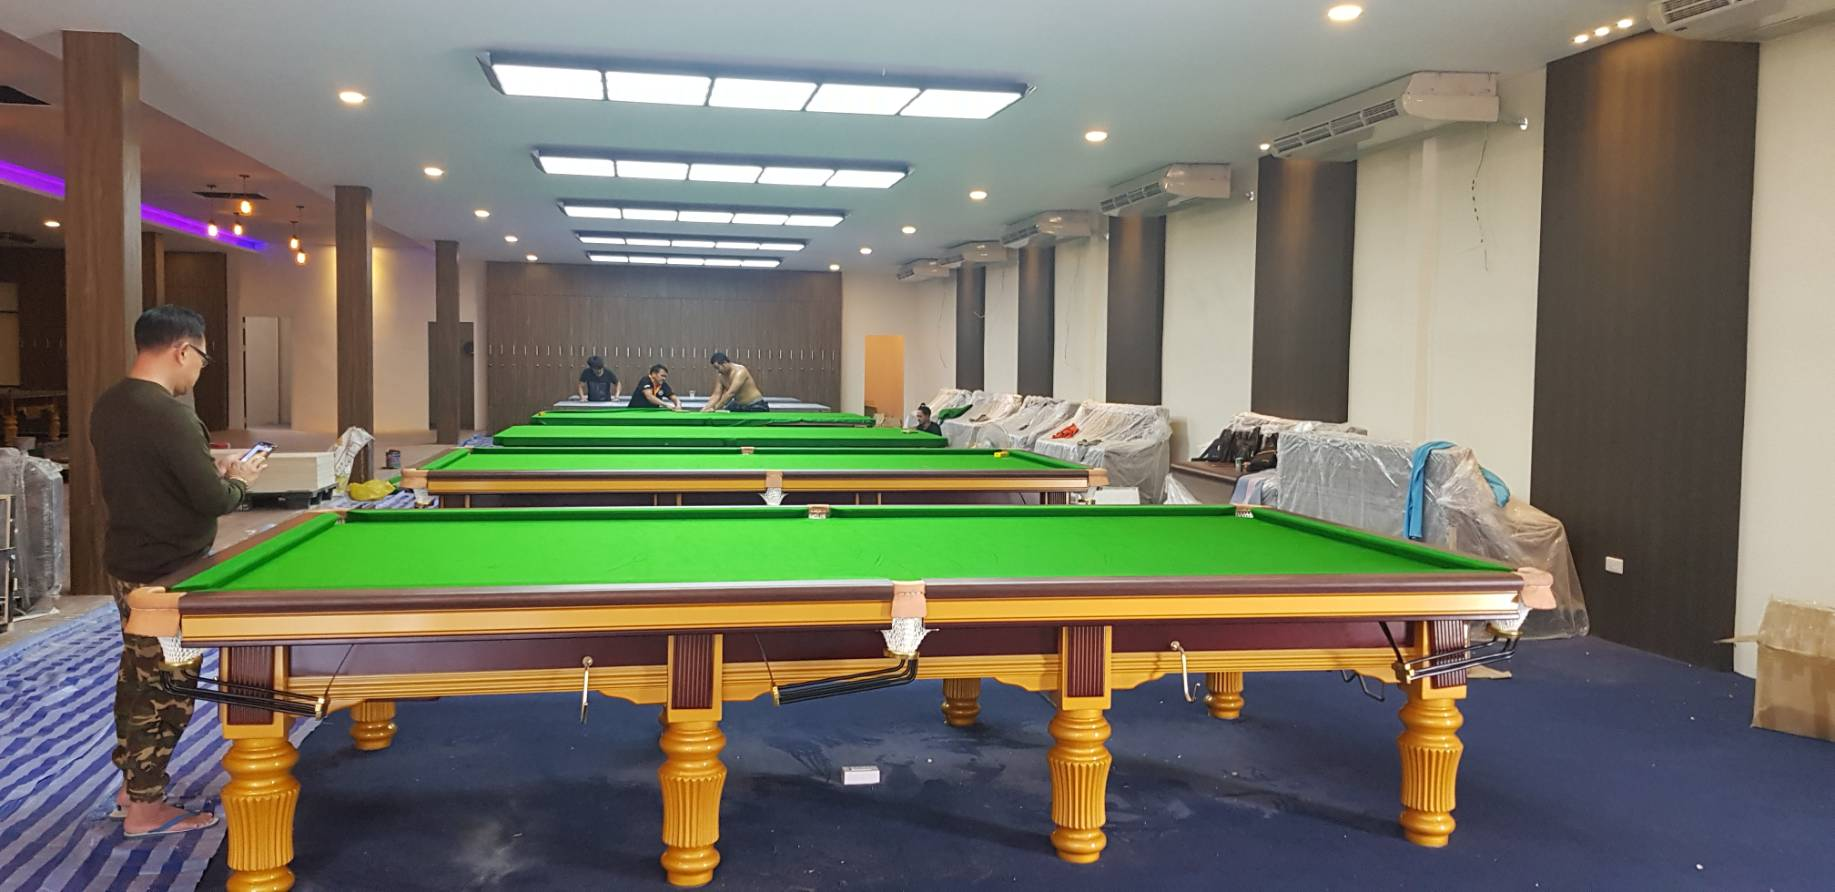 Tournoi Étoiles Jambe table de billard 12FT